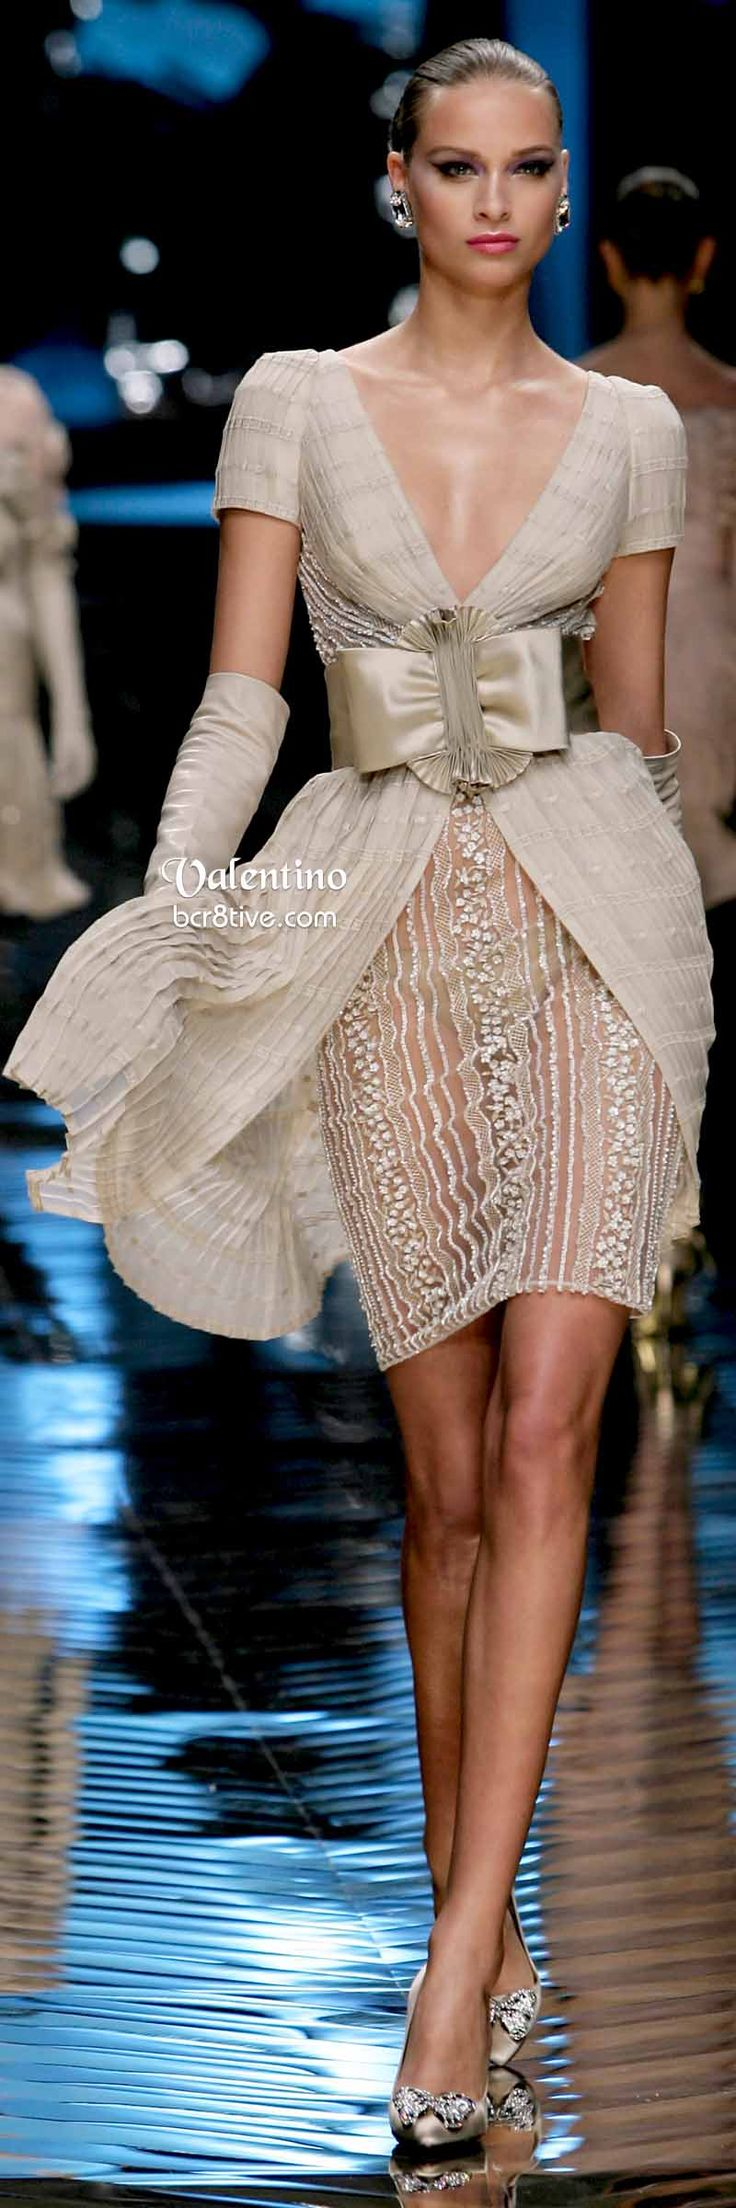 Light Coat Over Dress .. No Bow ..Valentino Sultry Neutral Evening Dress - Farewell Valentino Collection